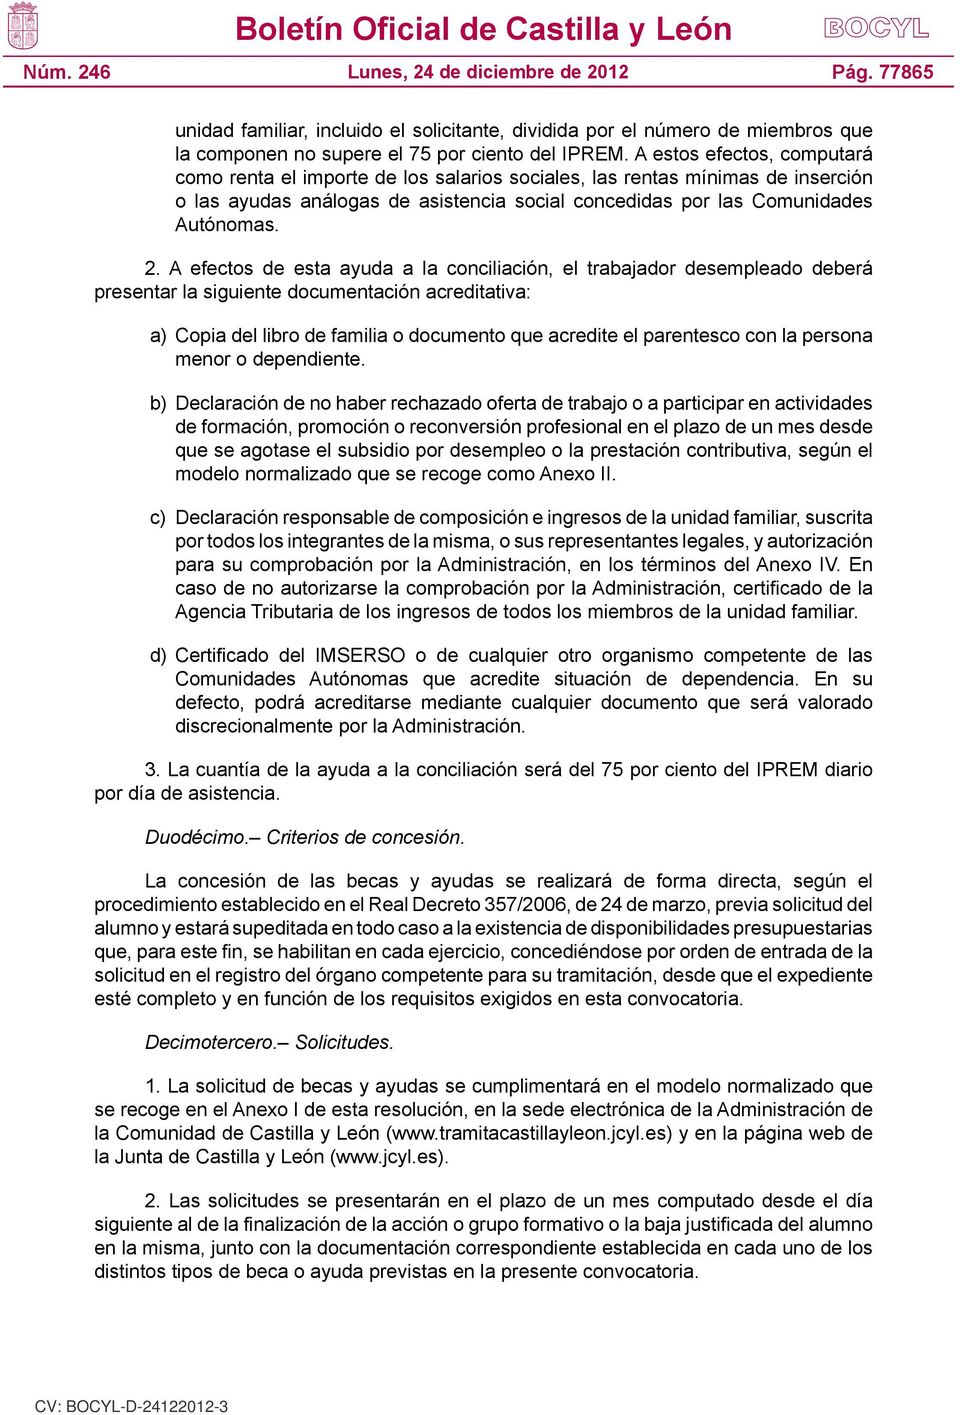 A efectos de esta ayuda a la conciliación, el trabajador desempleado deberá presentar la siguiente documentación acreditativa: a) Copia del libro de familia o documento que acredite el parentesco con